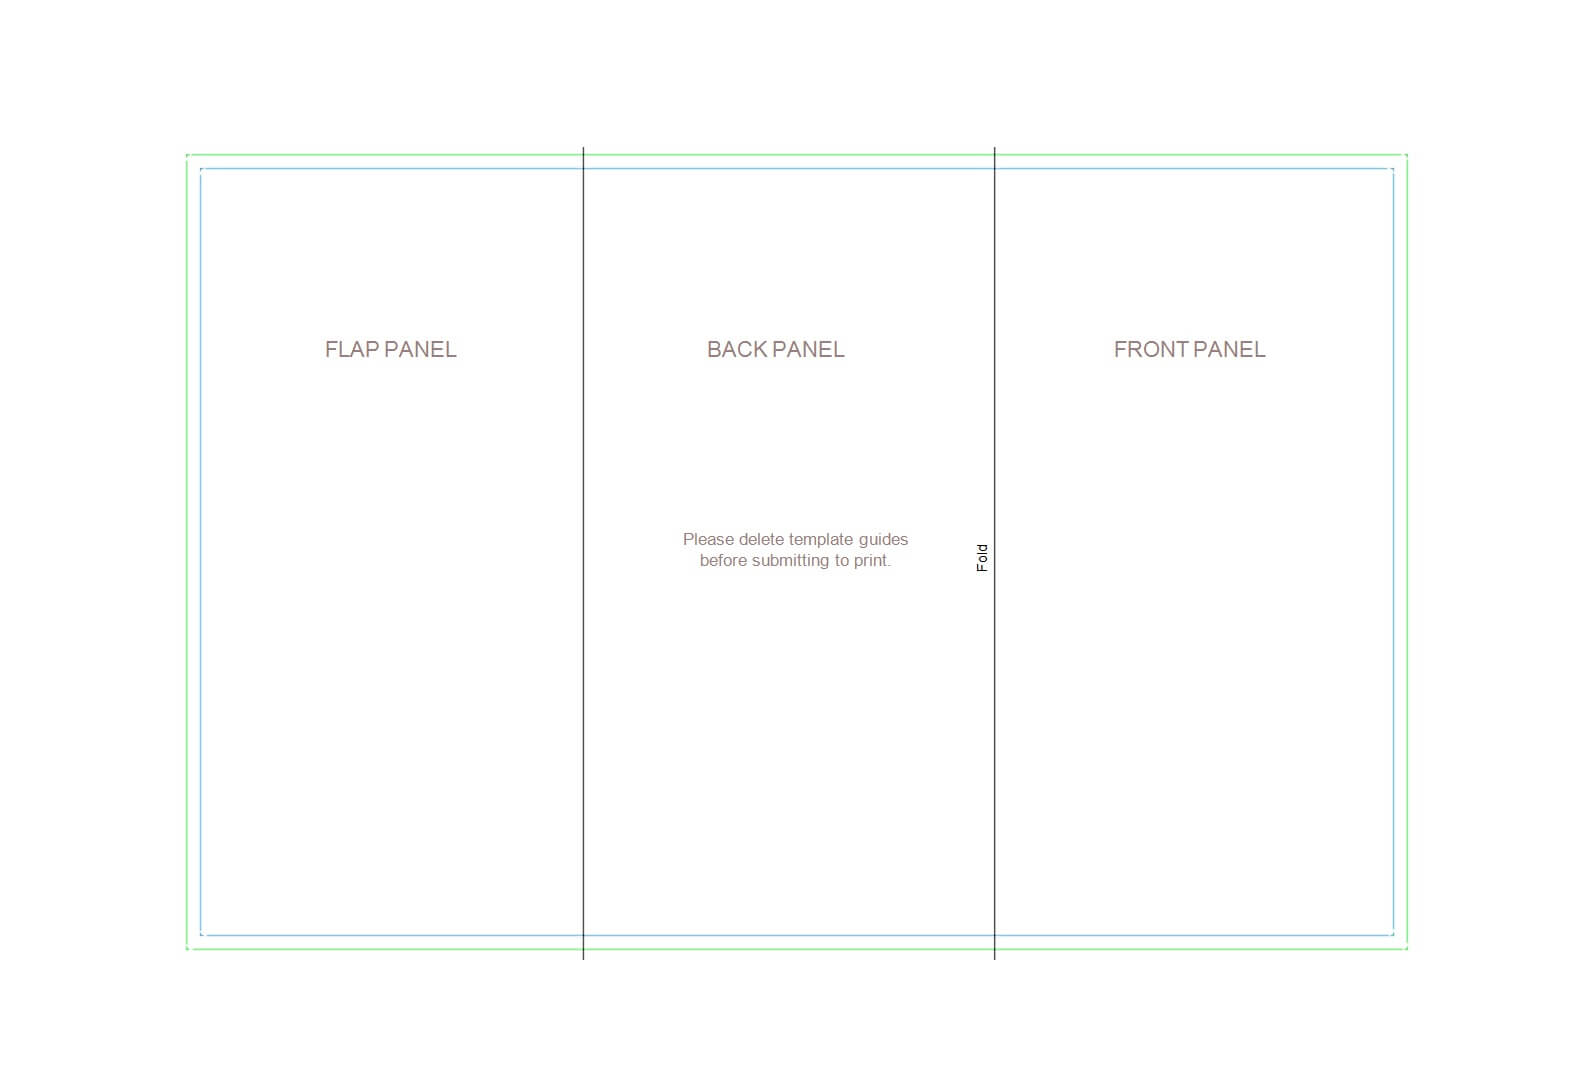 50 Free Pamphlet Templates [Word / Google Docs] ᐅ Template Lab For Google Doc Brochure Template